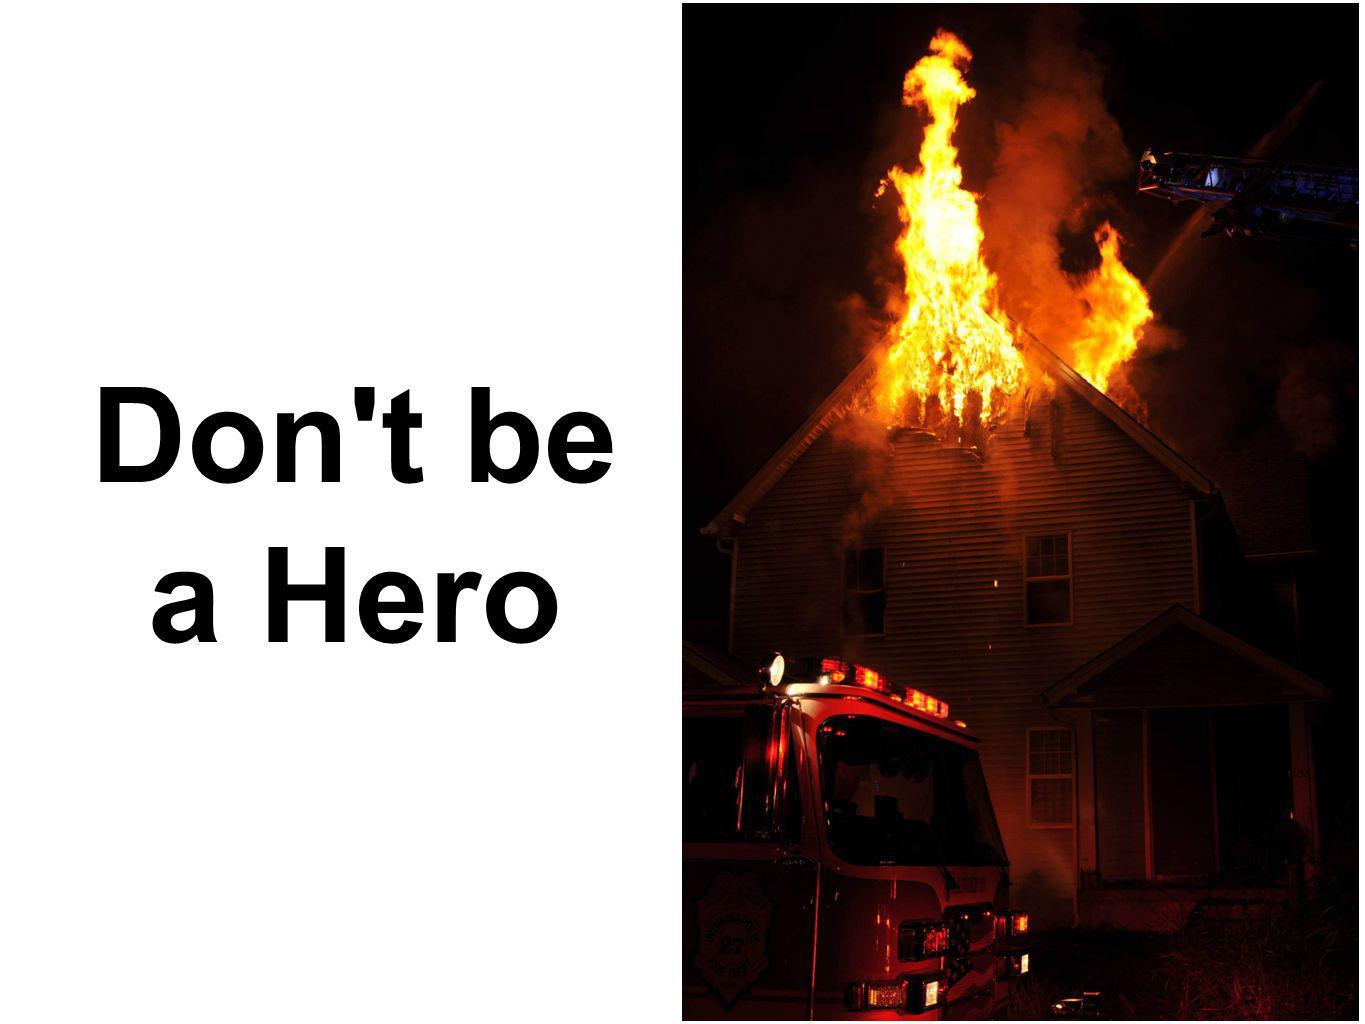 Don t be a Hero